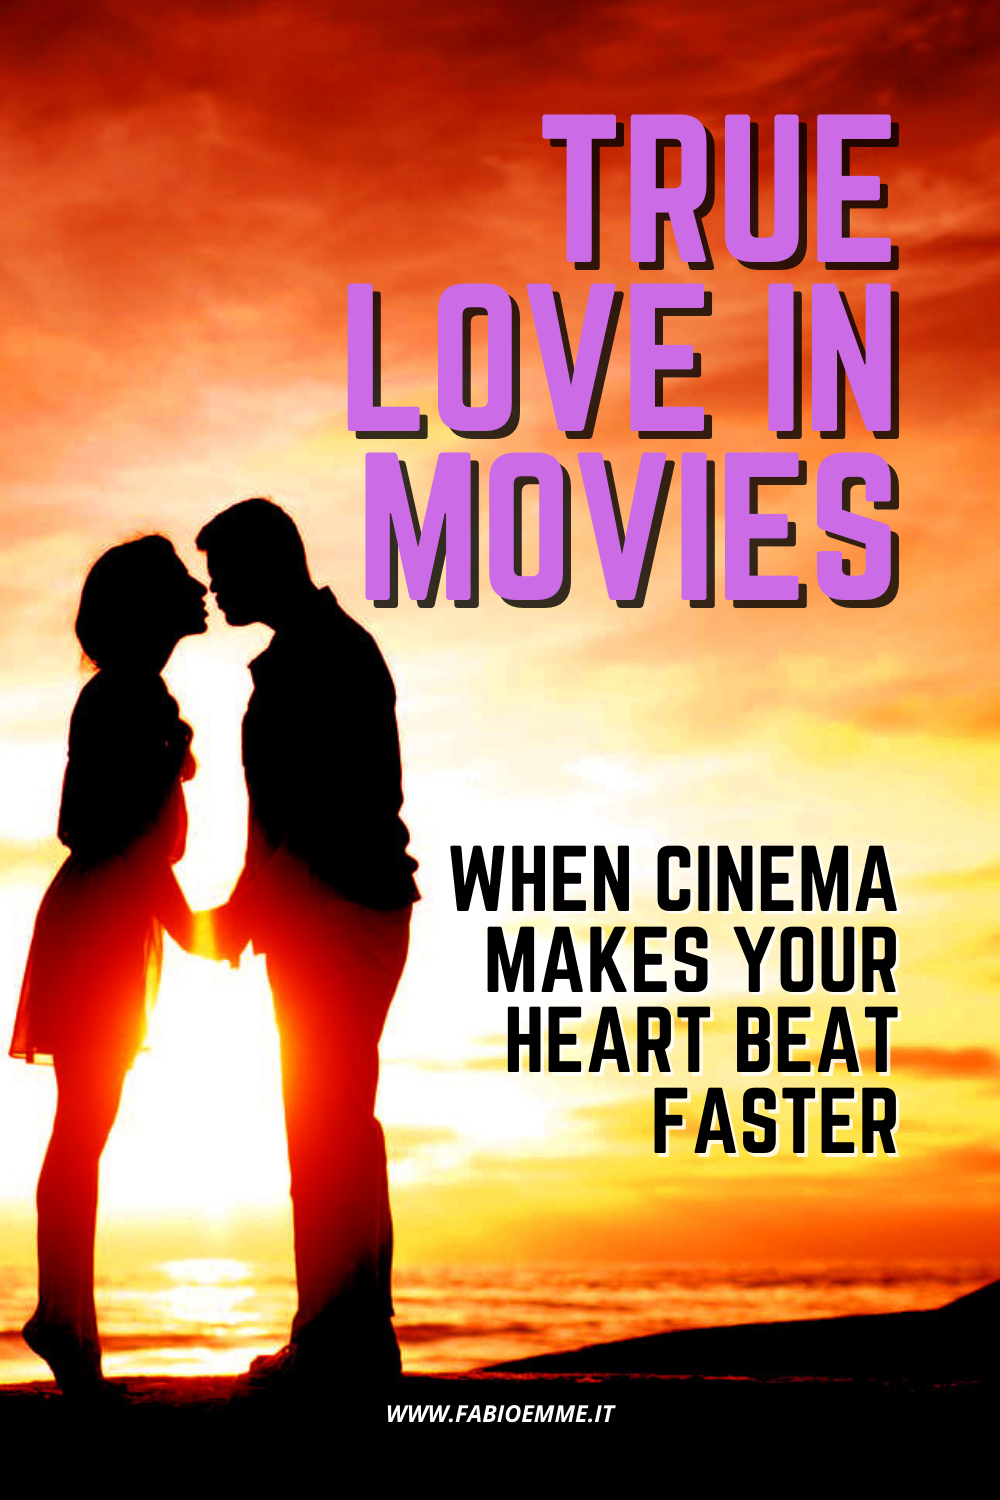 As in life three different movies about the reasons of the heart never have peace in the eternal search for true love at cinema. #MOVIES